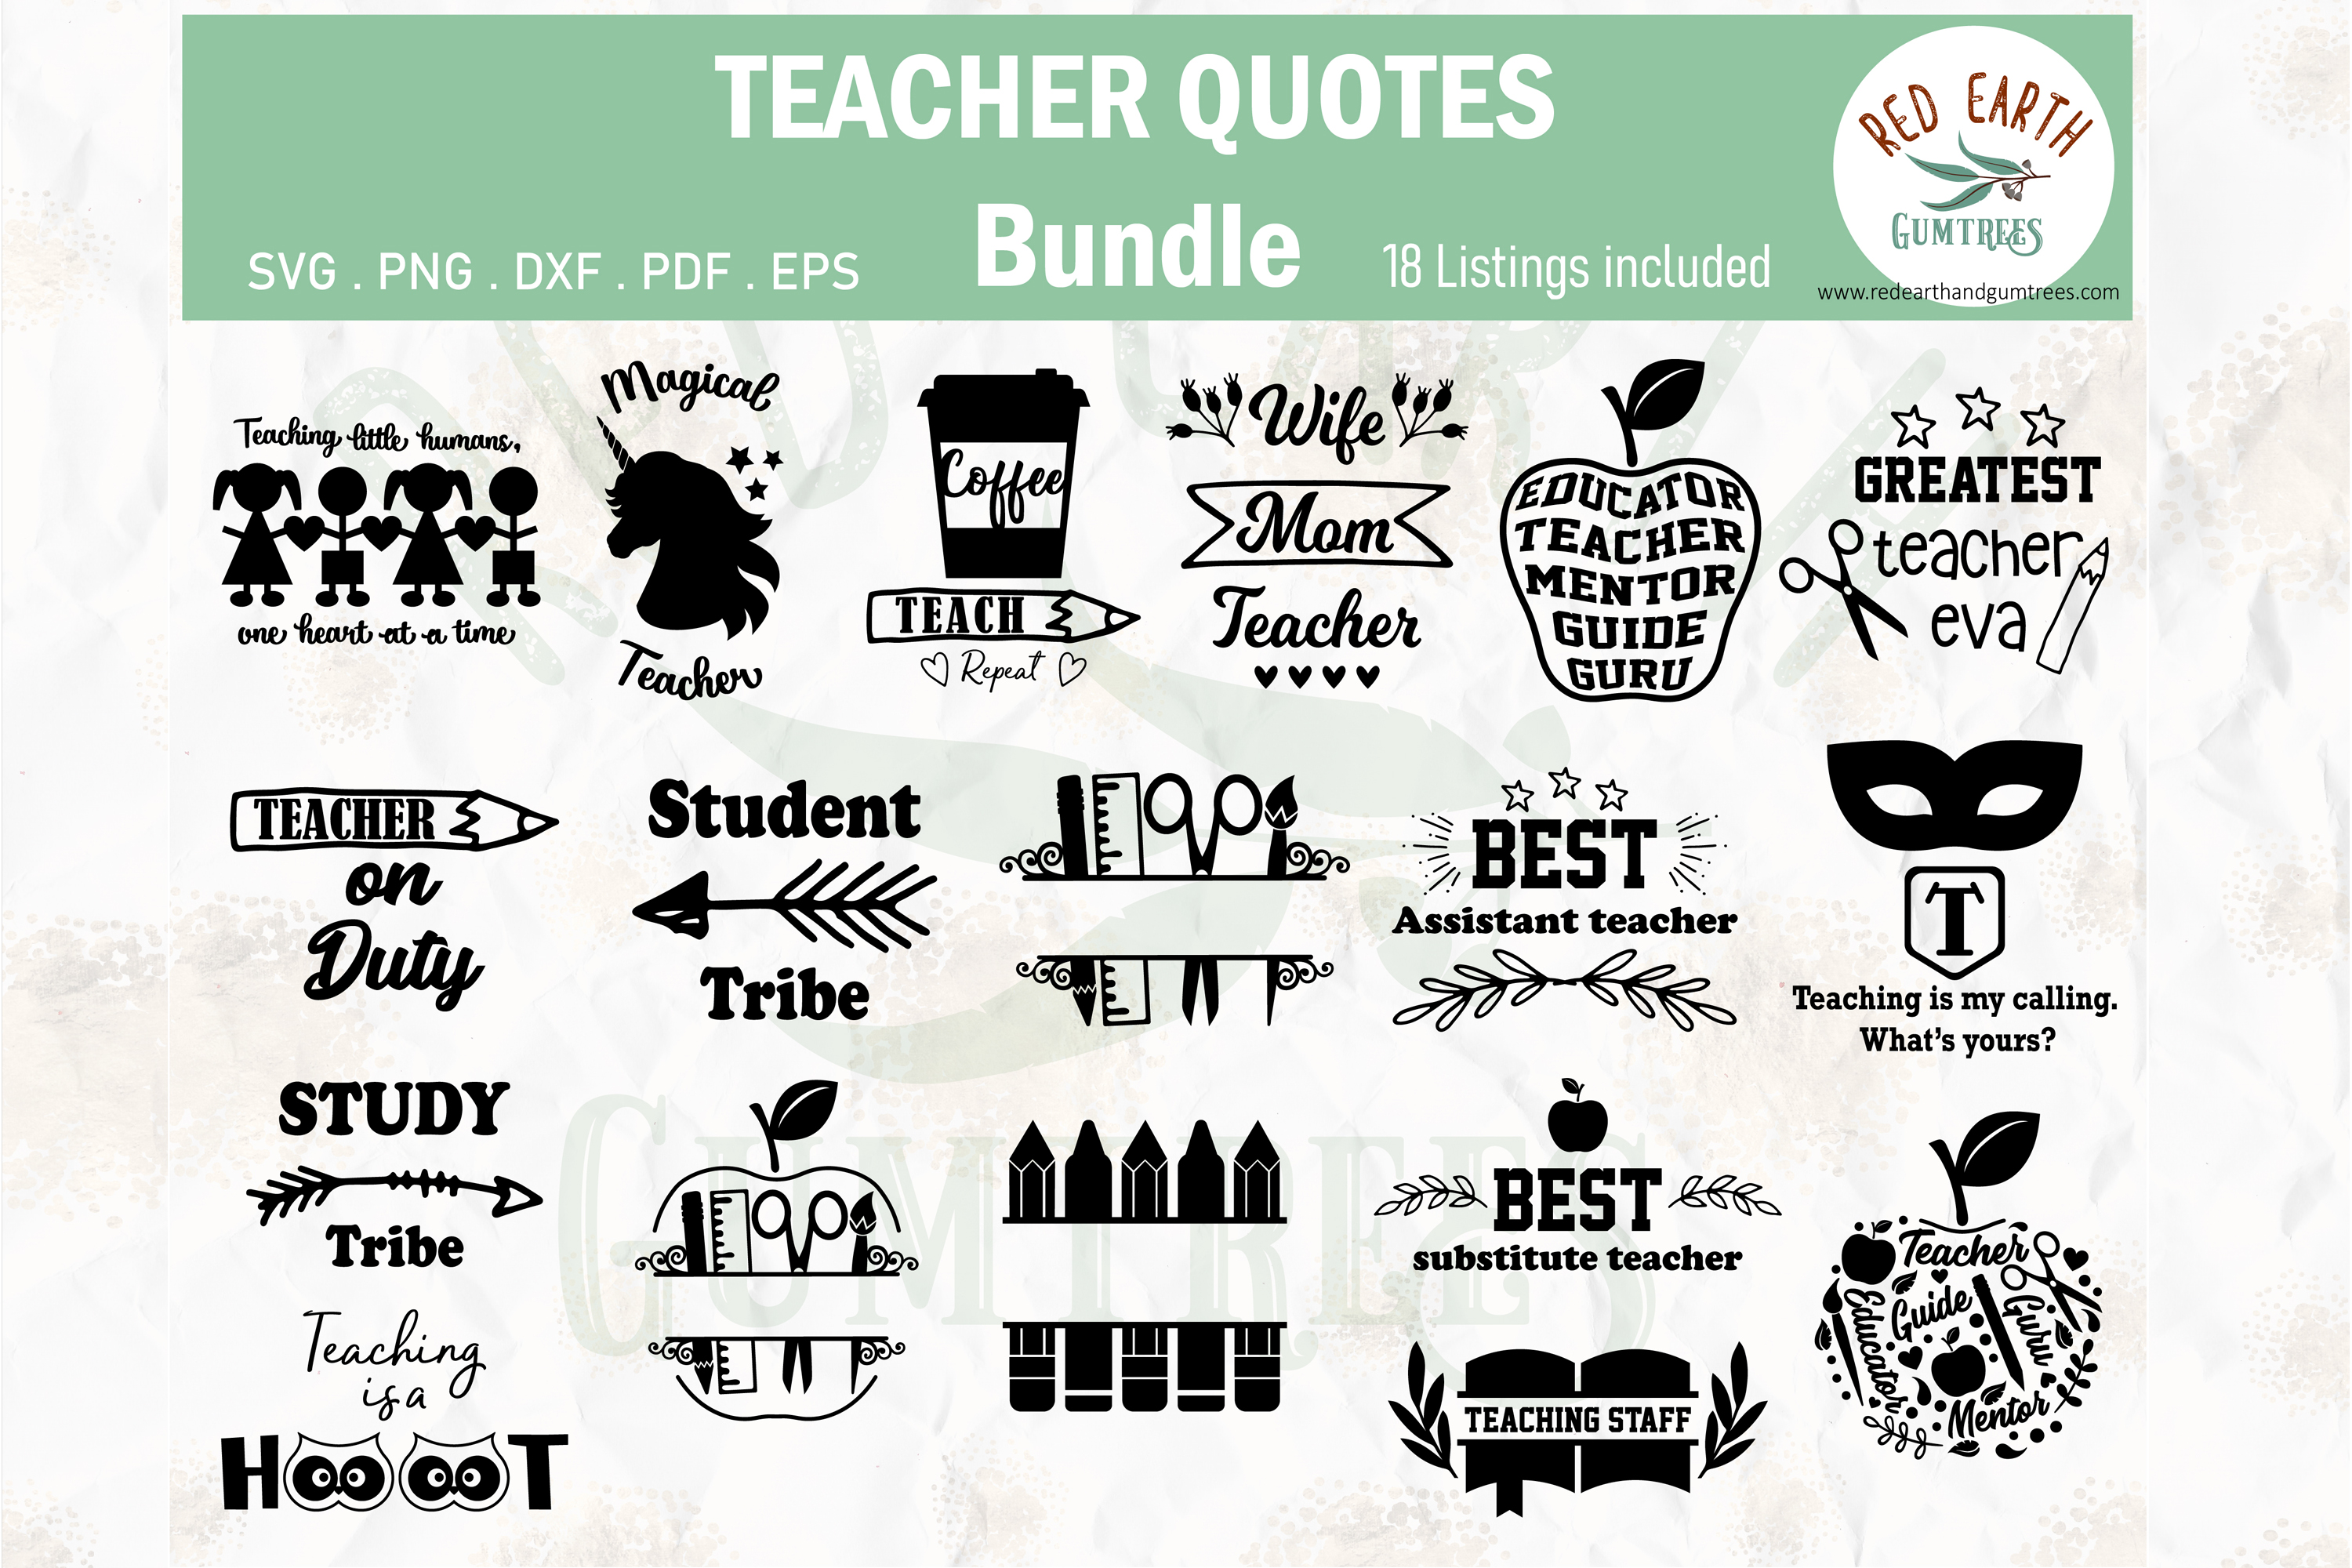 Download Free Teachers And Students Quotes Bundle Graphic By Redearth And for Cricut Explore, Silhouette and other cutting machines.